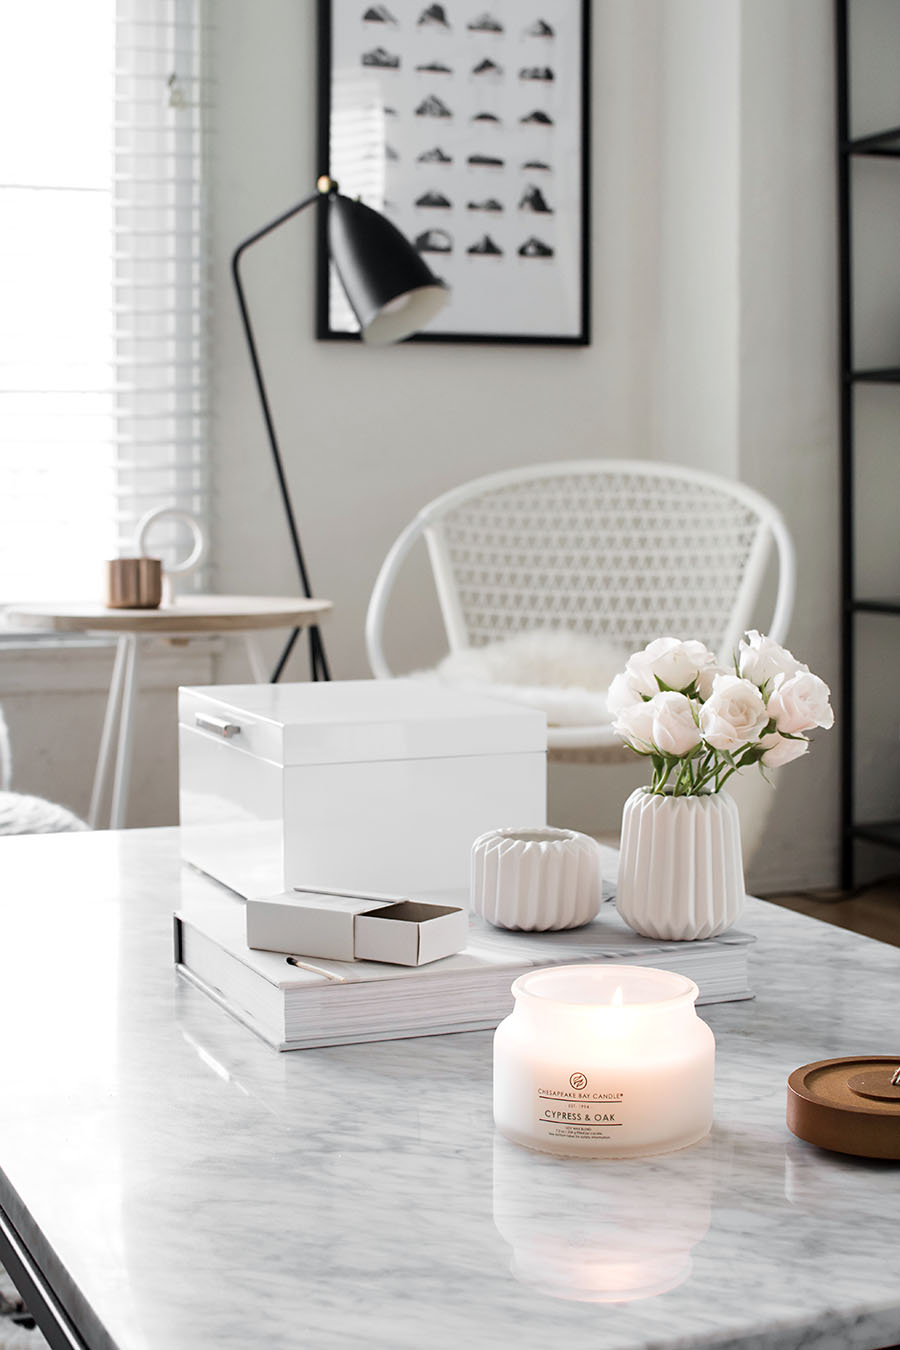 Those Things Away Especially If They Can T Double As Decor Keep It On Top Of The Table Or Put Underneath When You Need More Tabletop Space Easy